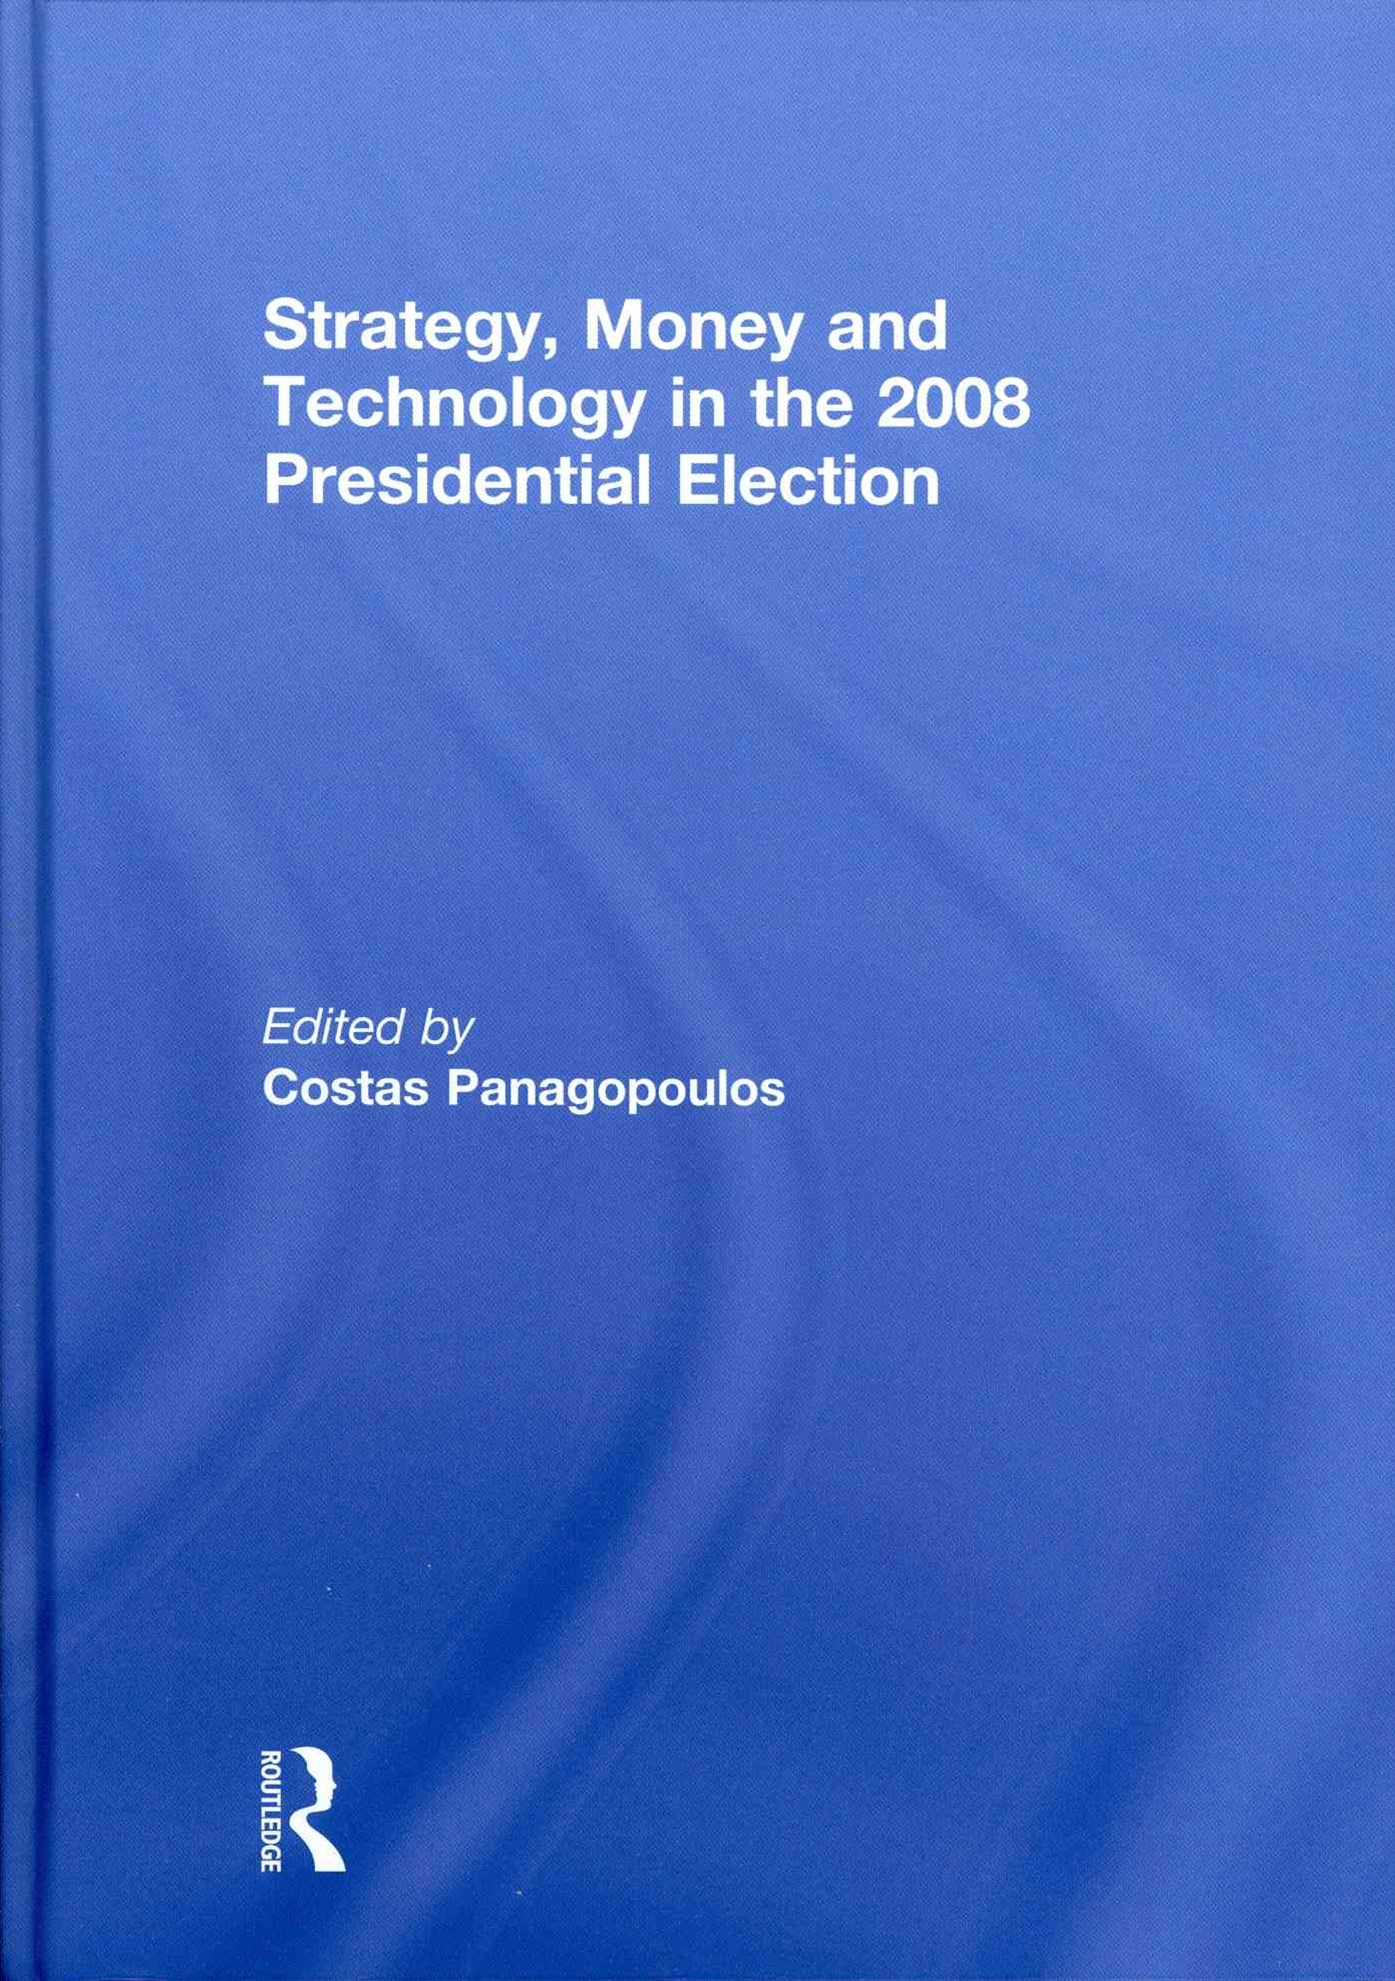 Strategy, Money and Technology in the 2008 Presidential Election